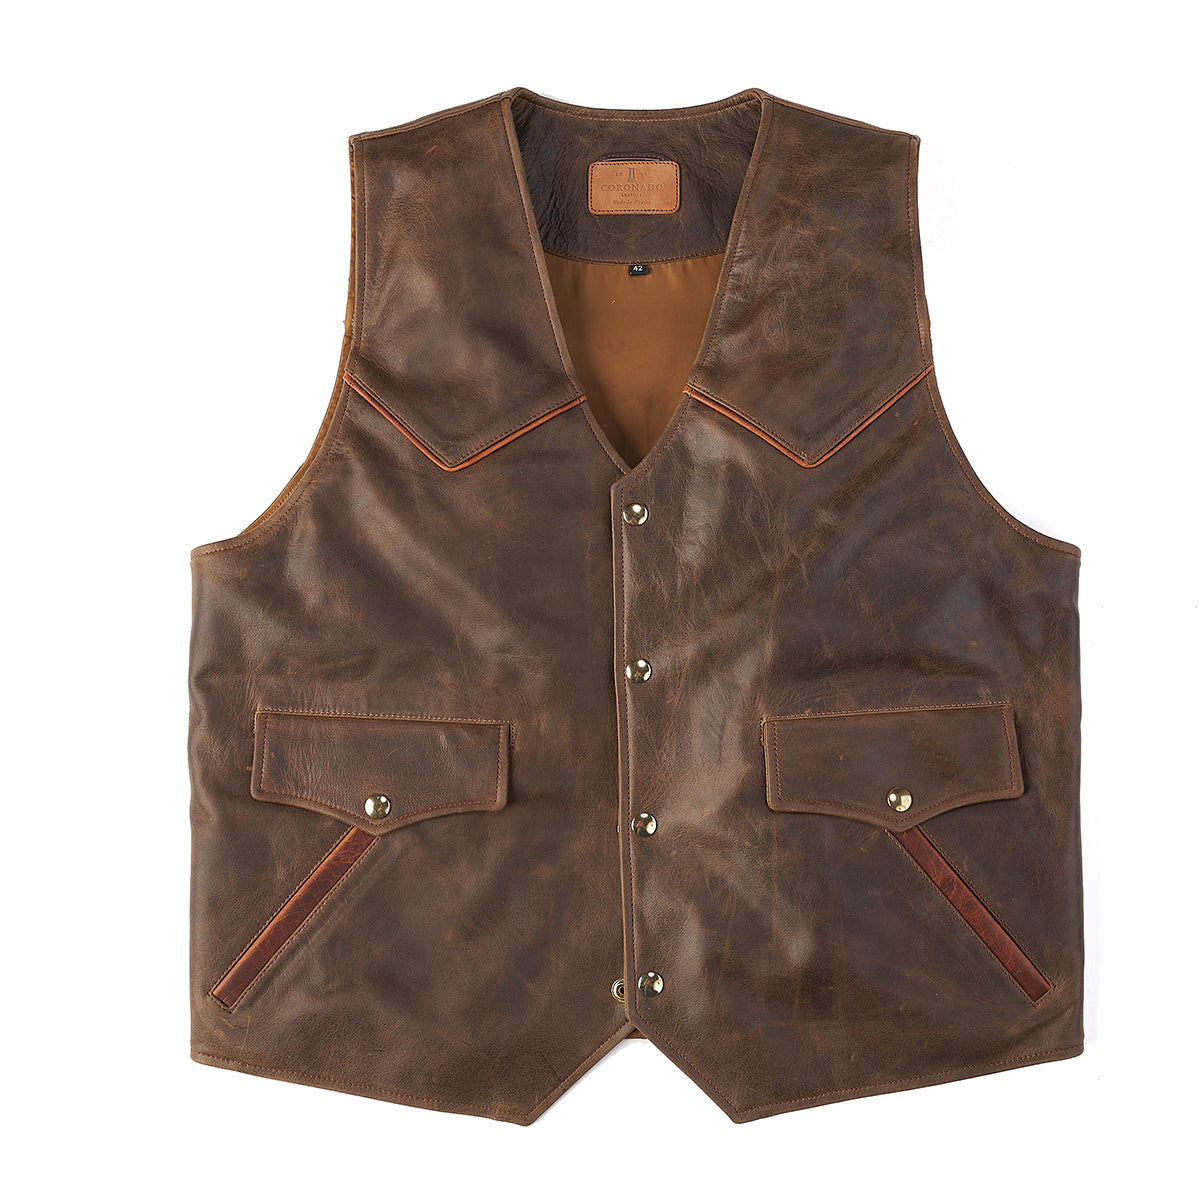 Circle-C Vest (CLOSED - Limited Stock)